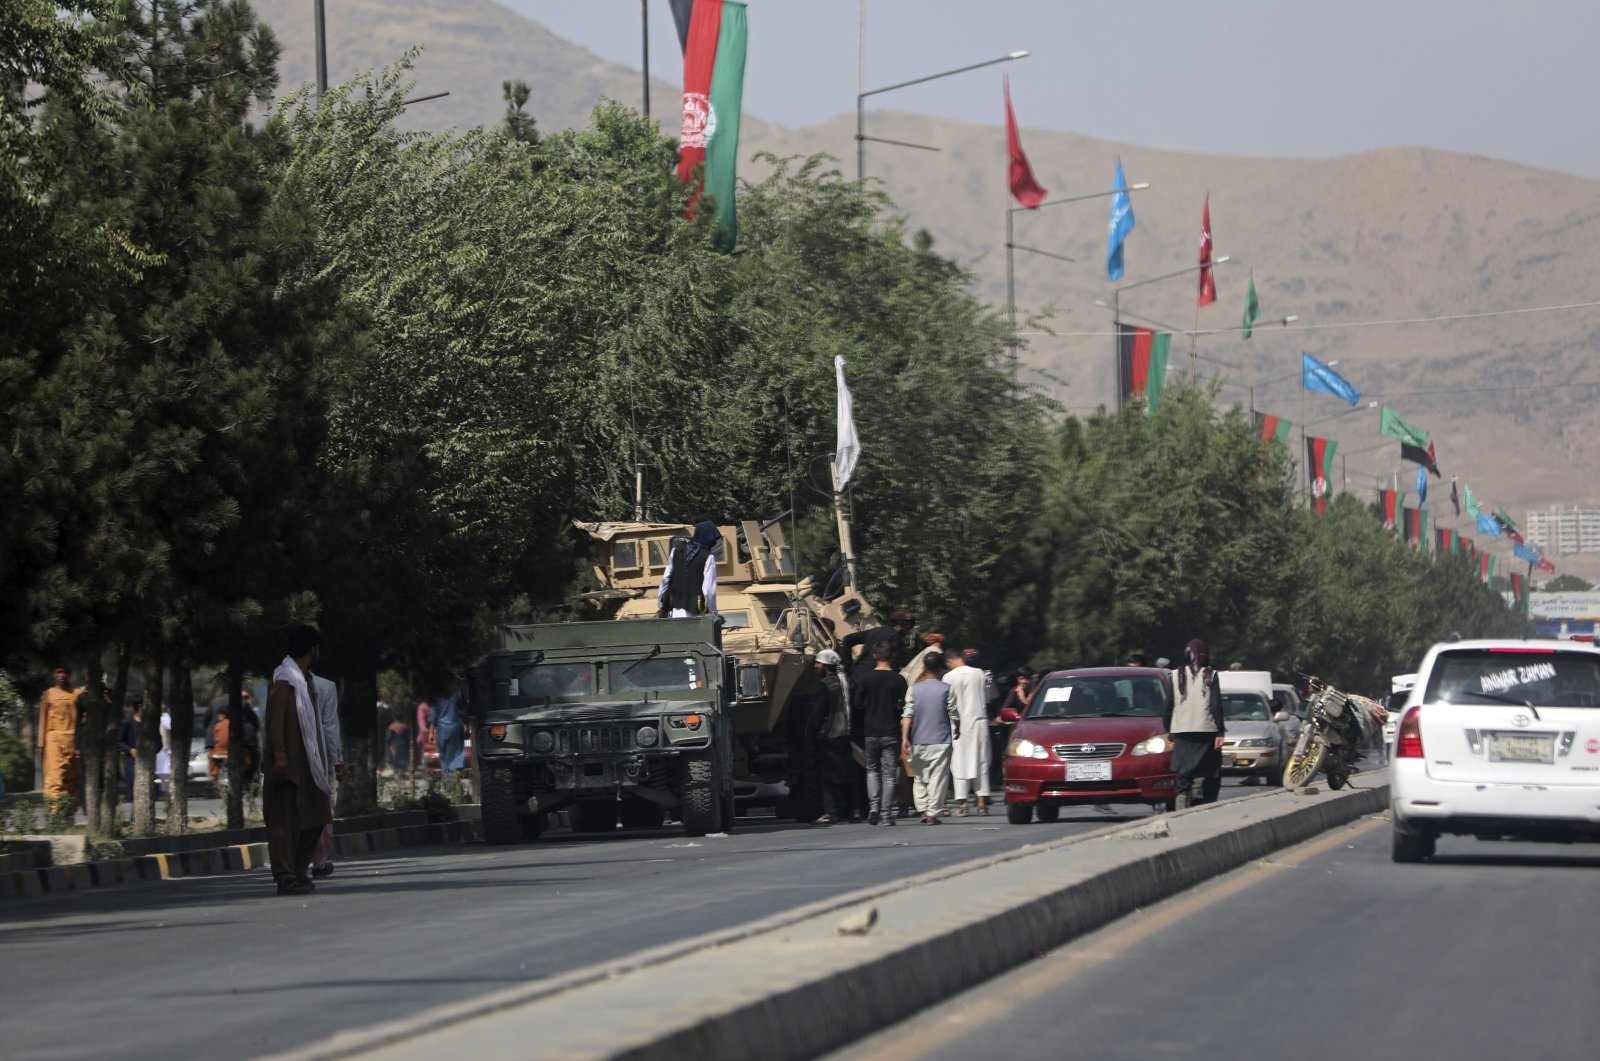 Taliban fighters stand guard on the road leading to the Hamid Karzai International Airport, in Kabul, Afghanistan, Aug. 16, 2021. (AP Photo)